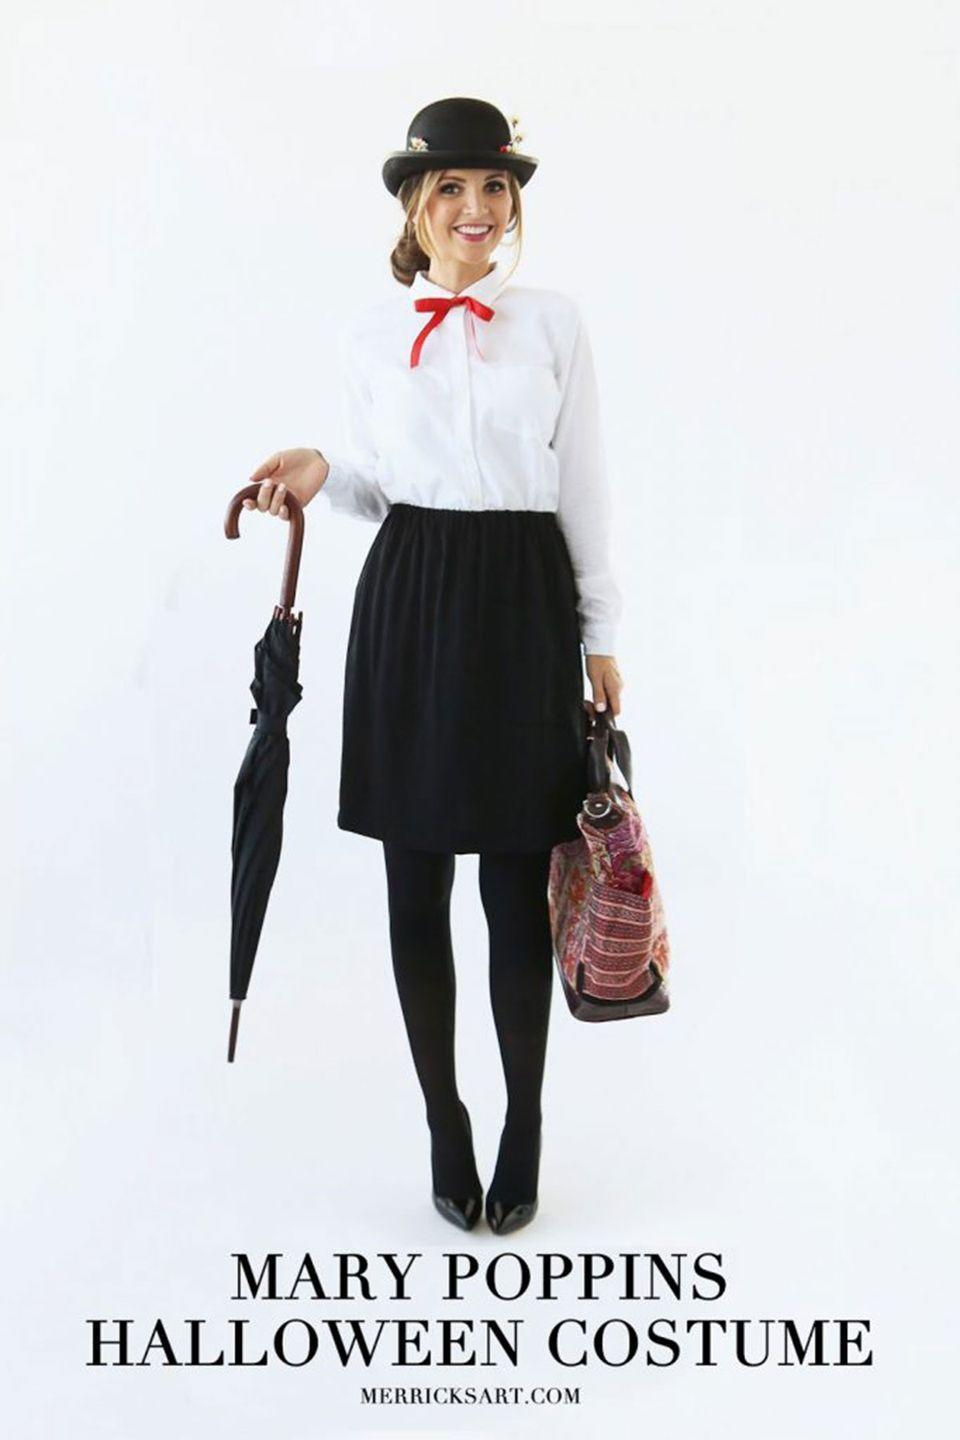 """<p>Pack your purse in the most delightful way—with candy, a flashlight, and any other Halloween essentials. You'll be just like the real Mary Poppins!</p><p><strong>Get the tutorial at <a href=""""http://www.merricksart.com/2015/10/modern-girls-halloween-week-mary.html"""" rel=""""nofollow noopener"""" target=""""_blank"""" data-ylk=""""slk:Merrick's Art"""" class=""""link rapid-noclick-resp"""">Merrick's Art</a>. </strong></p>"""